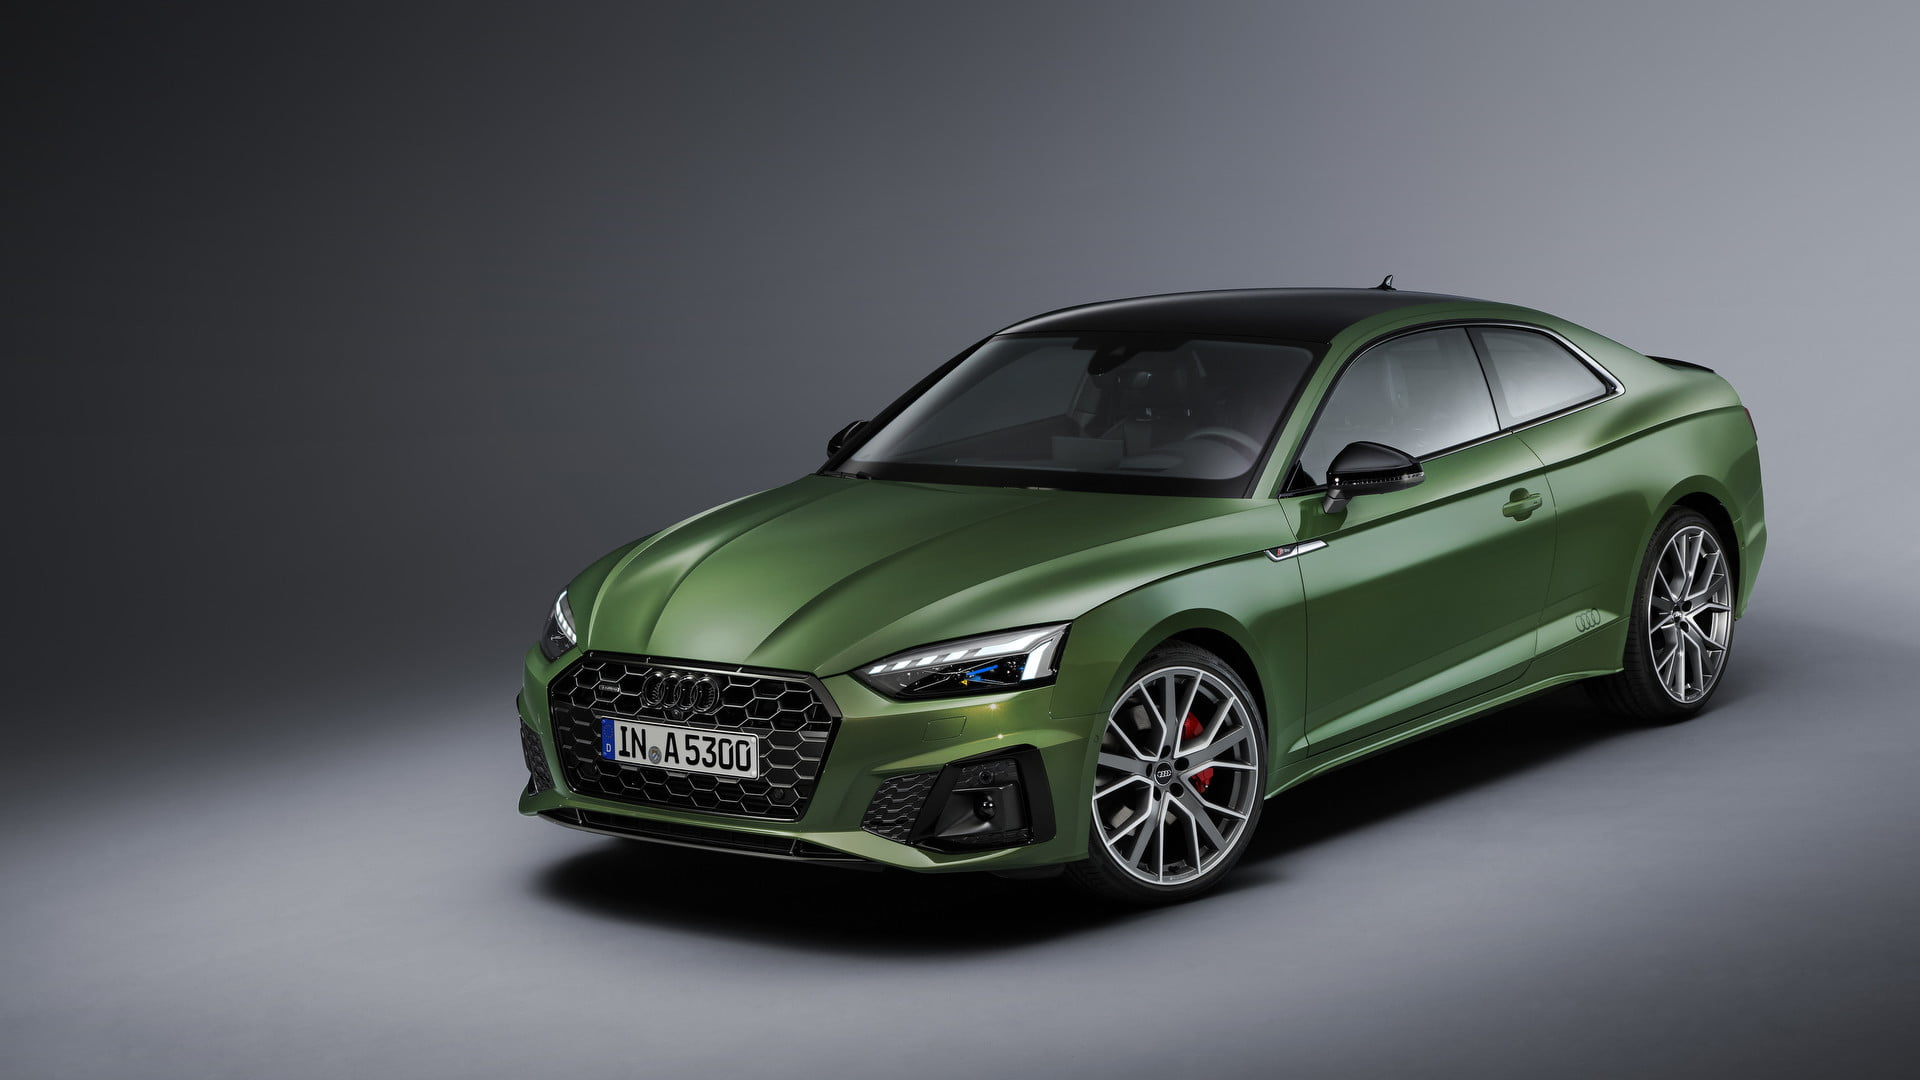 2020 audi a5 gets styling and infotainment updates